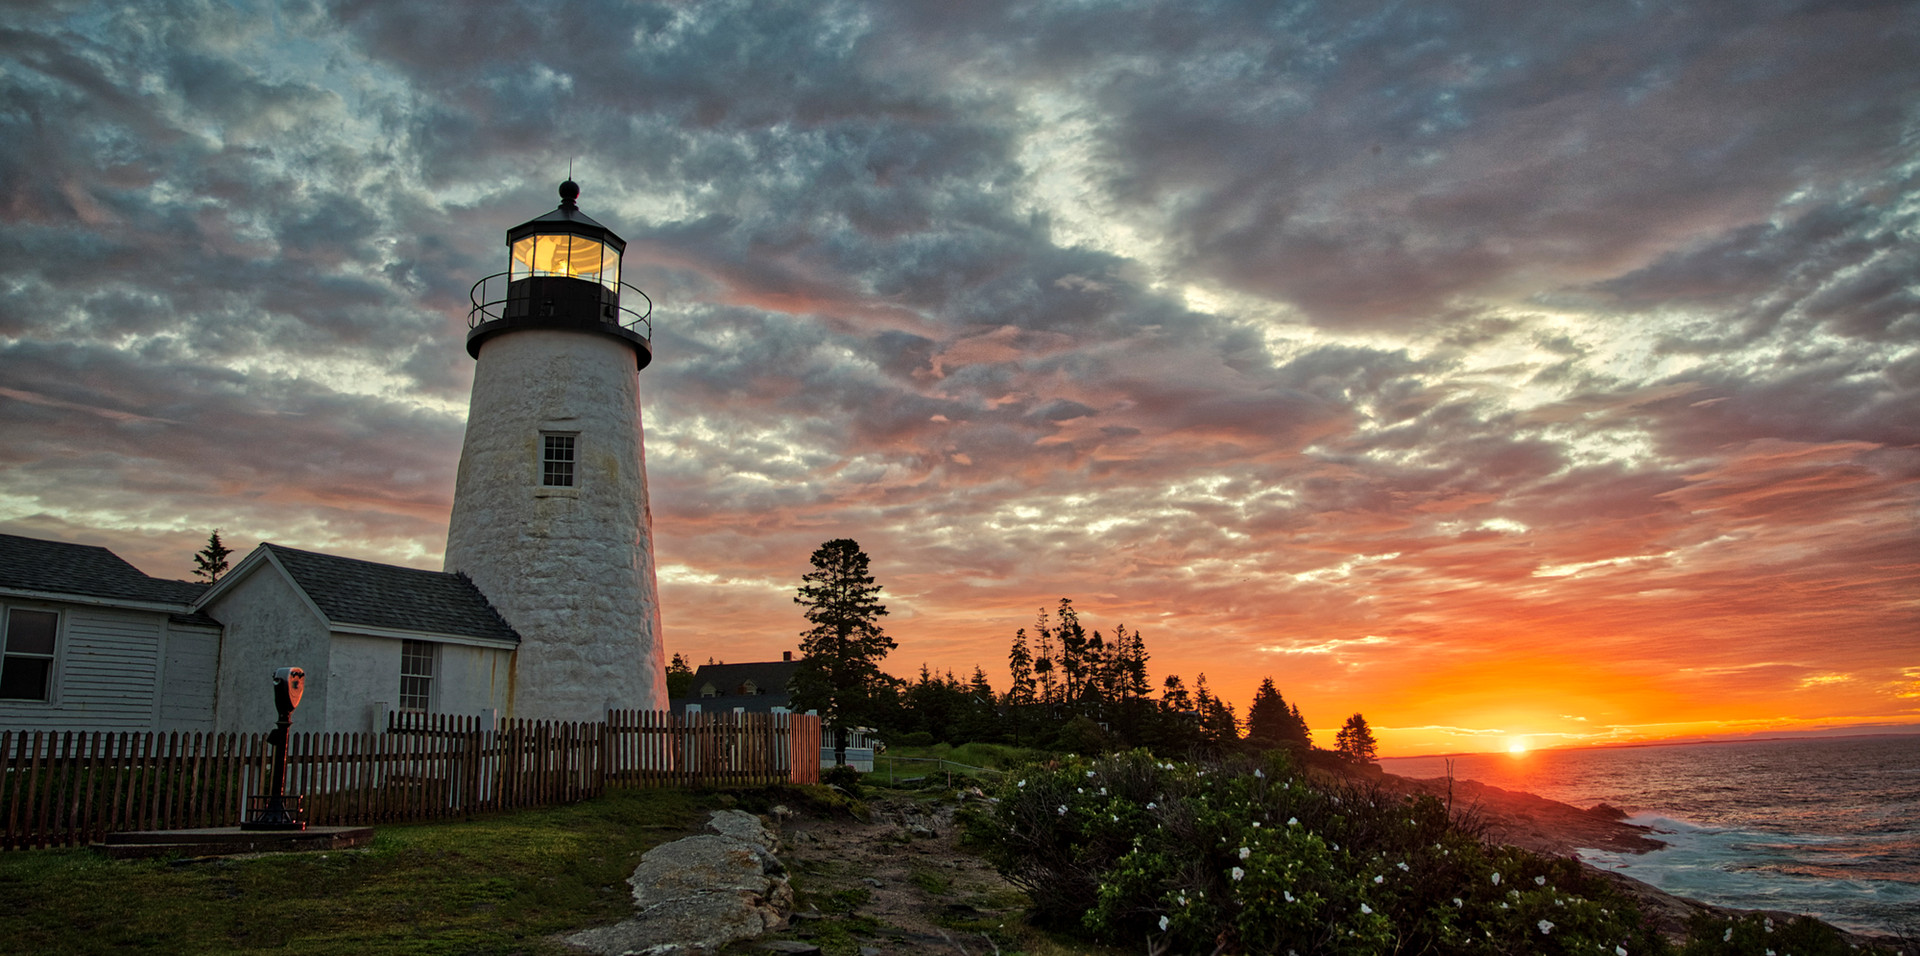 Pemequid Lighthouse